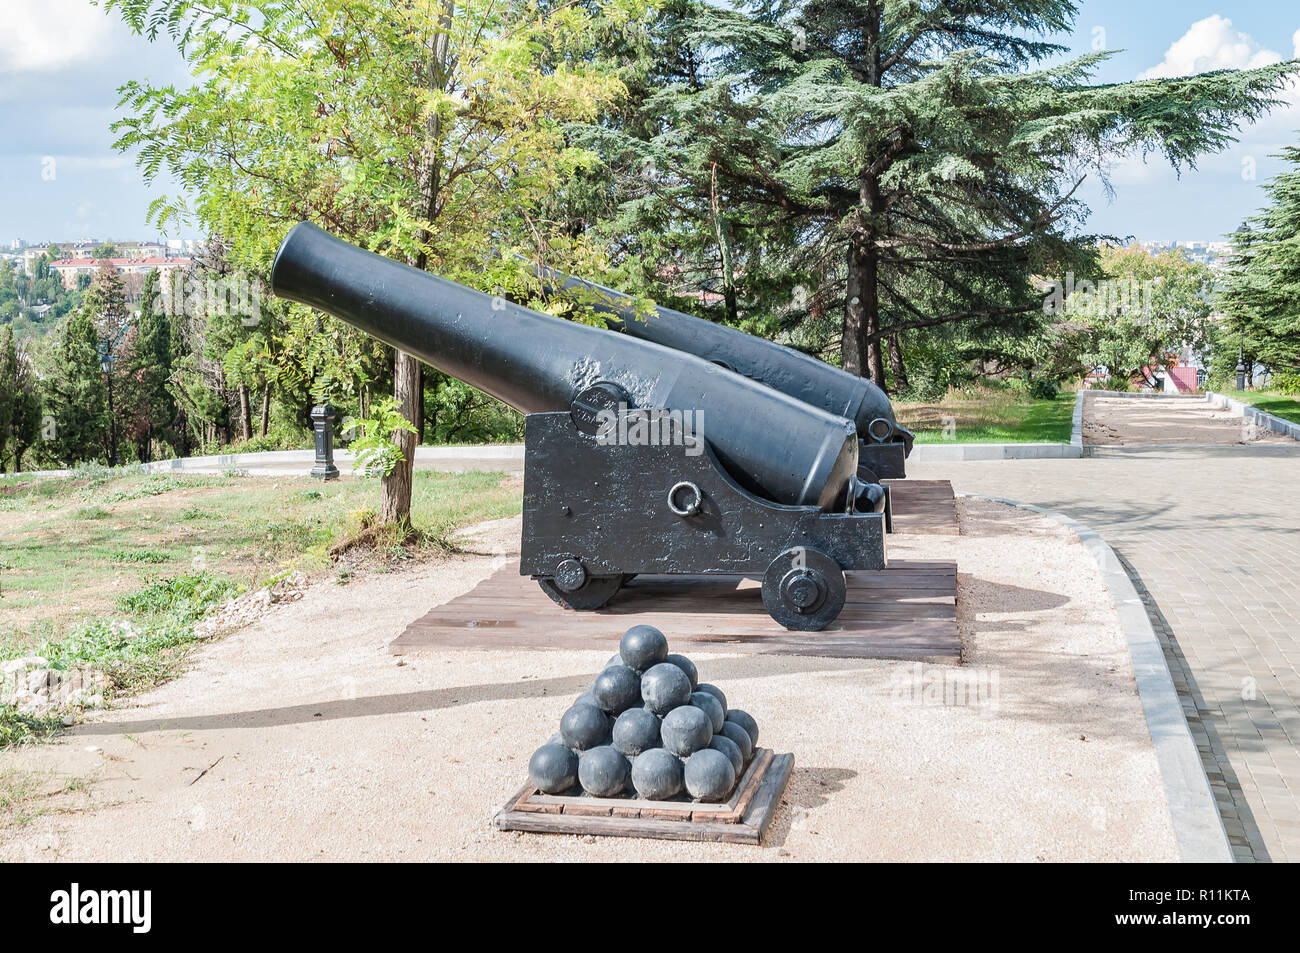 Old cannons on wooden carriages and defensive fort cores. Military Museum. - Stock Image